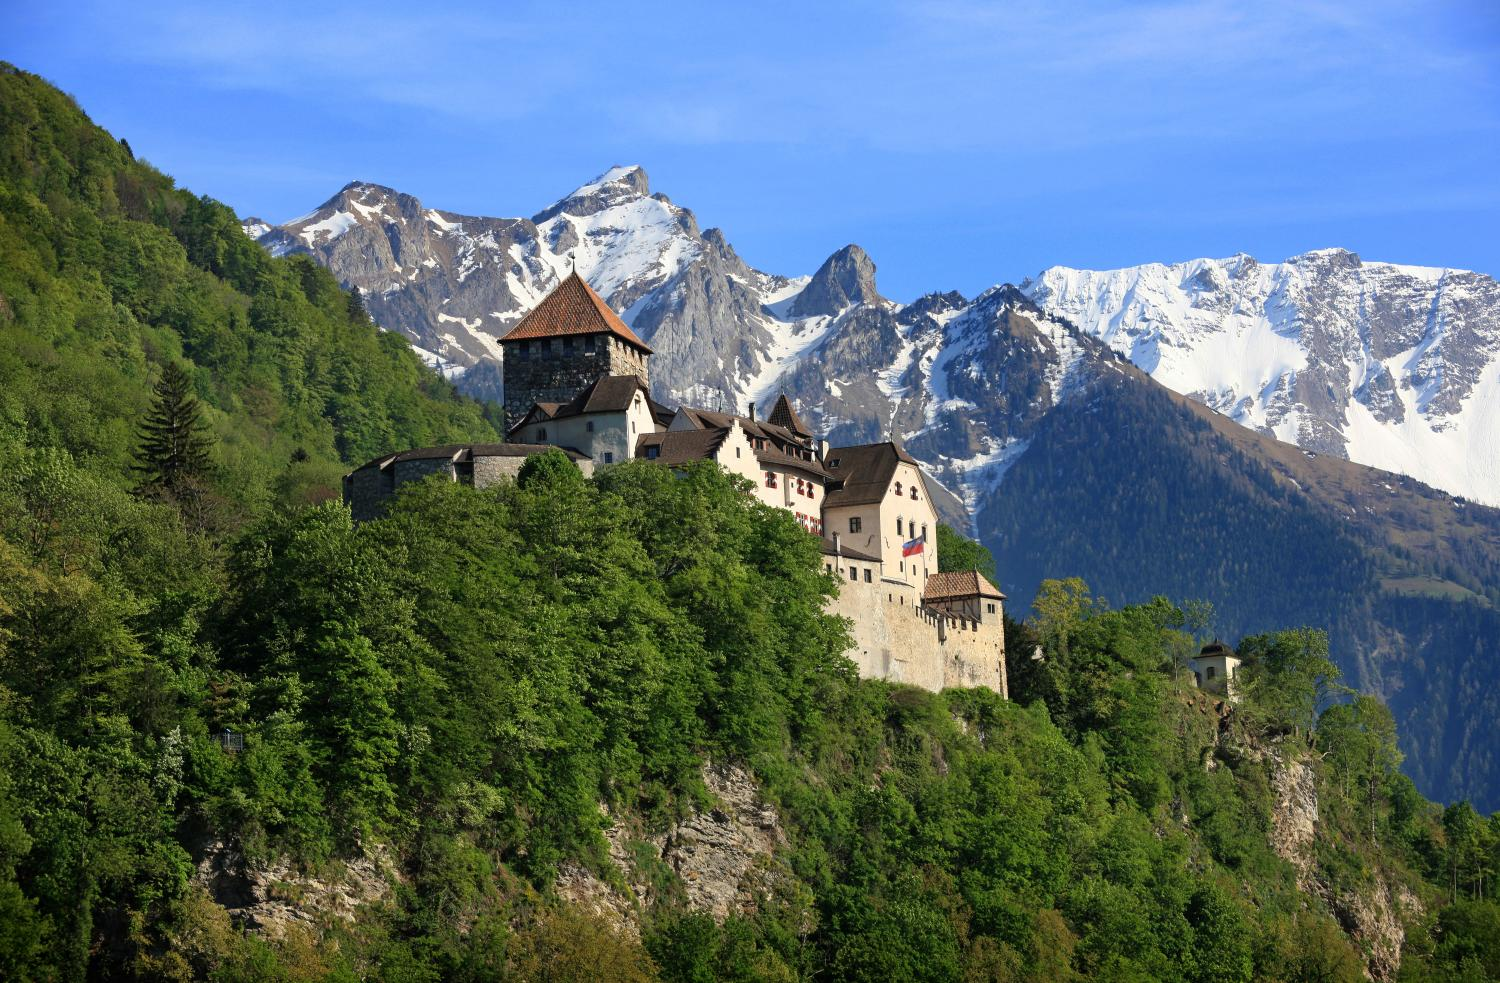 Vaduz Castle is the palace and official residence of the Prince of Liechtenstein. Roland Korner